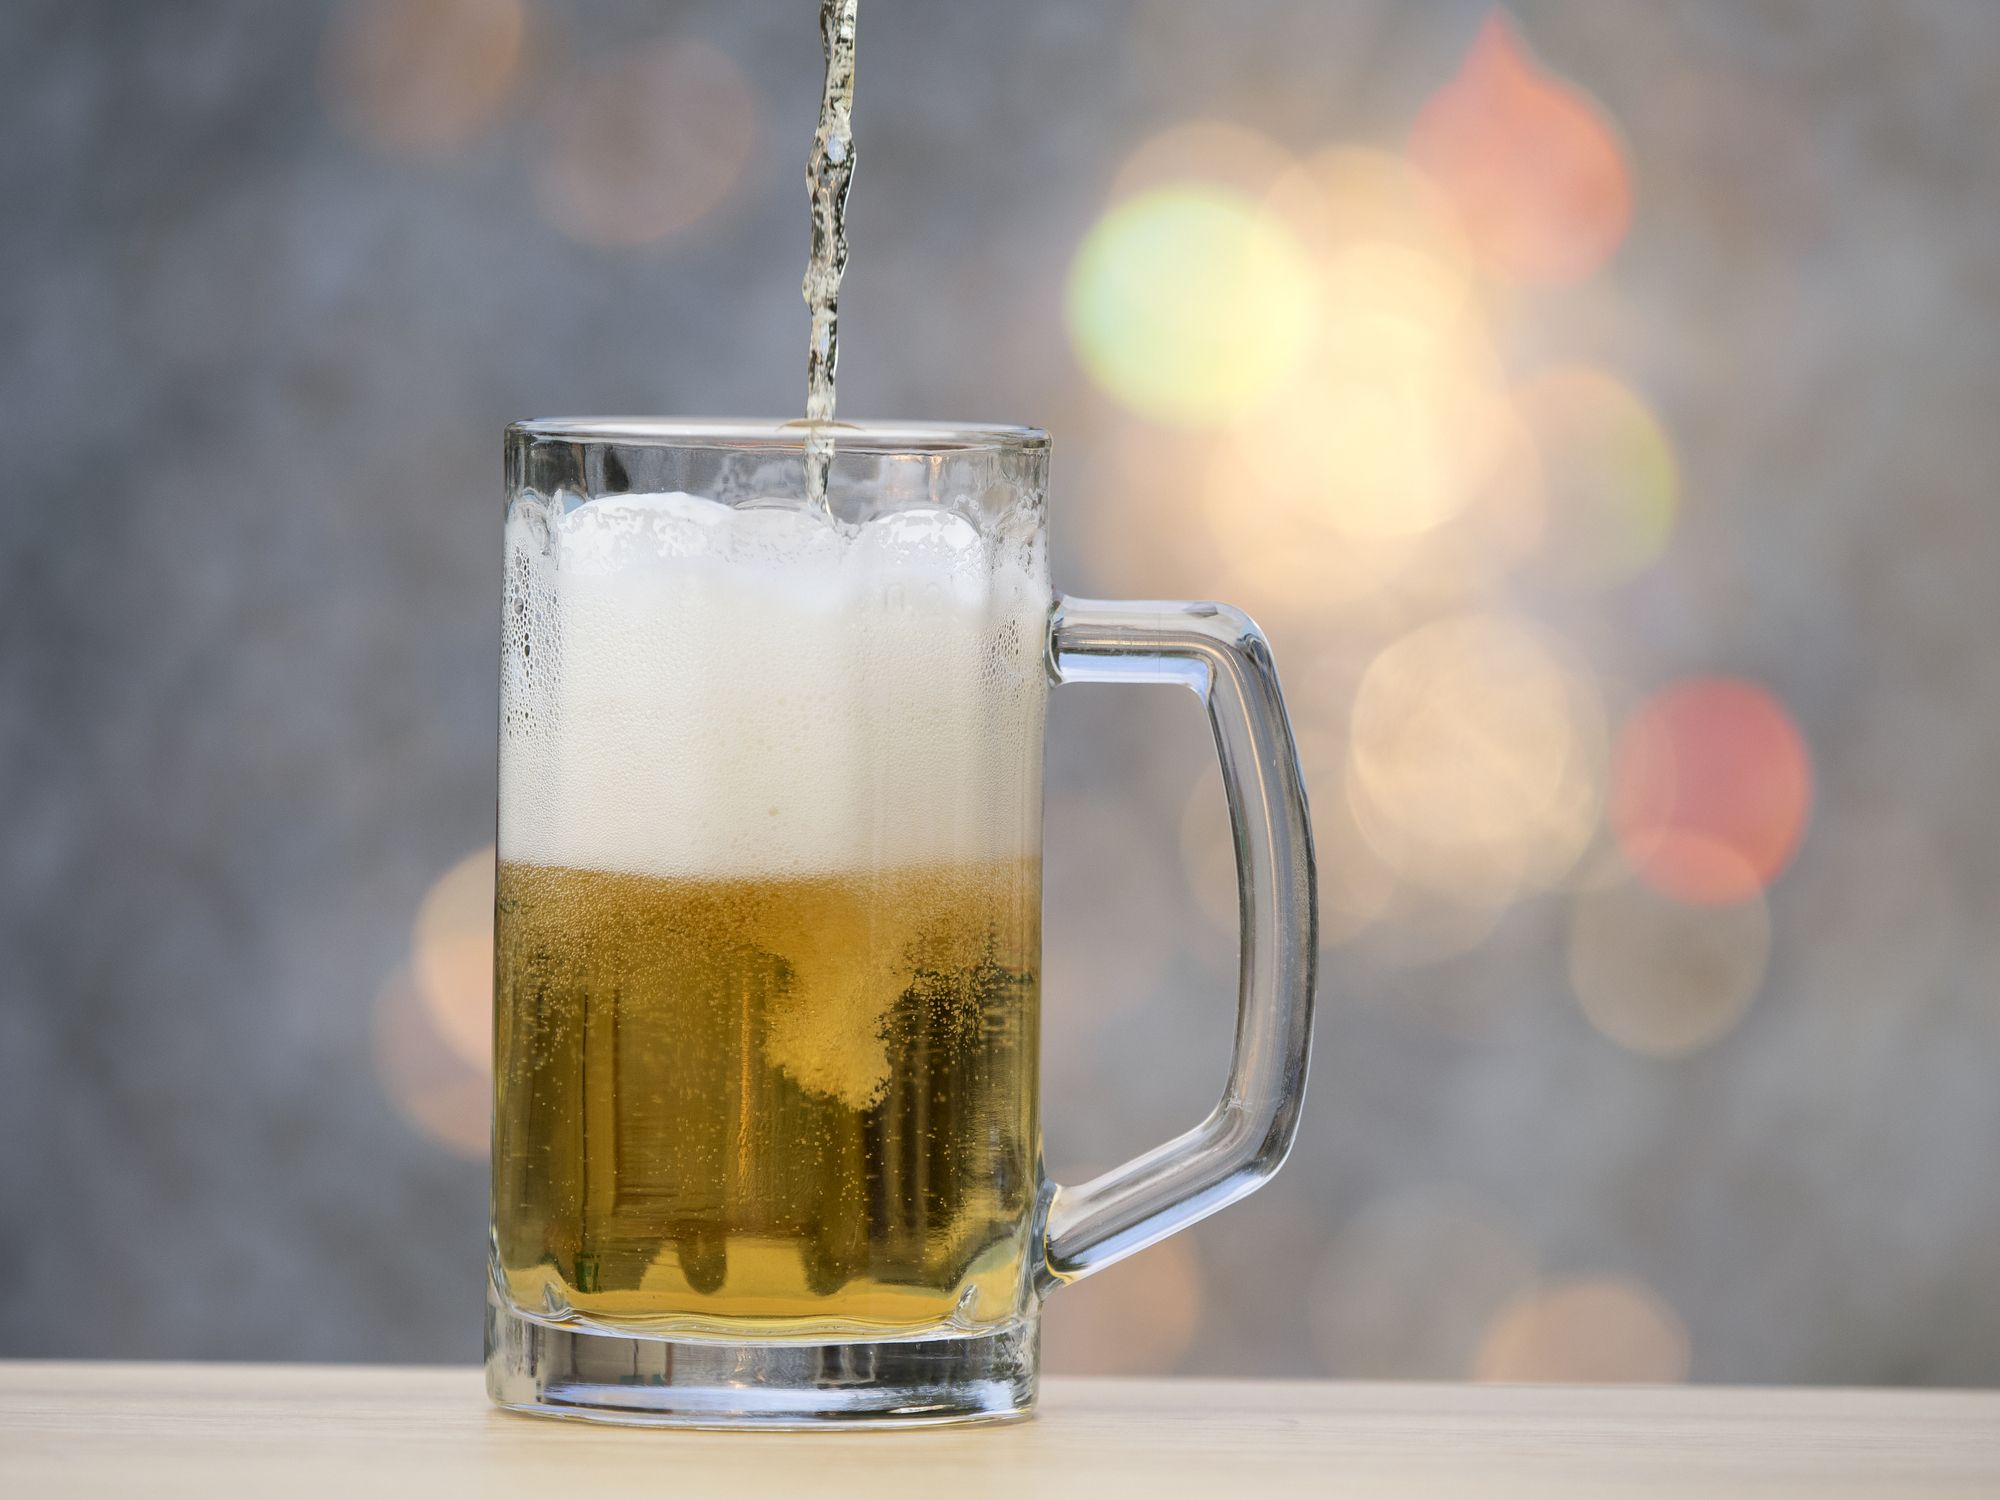 To fill a pitcher of crystal of beer with natural light